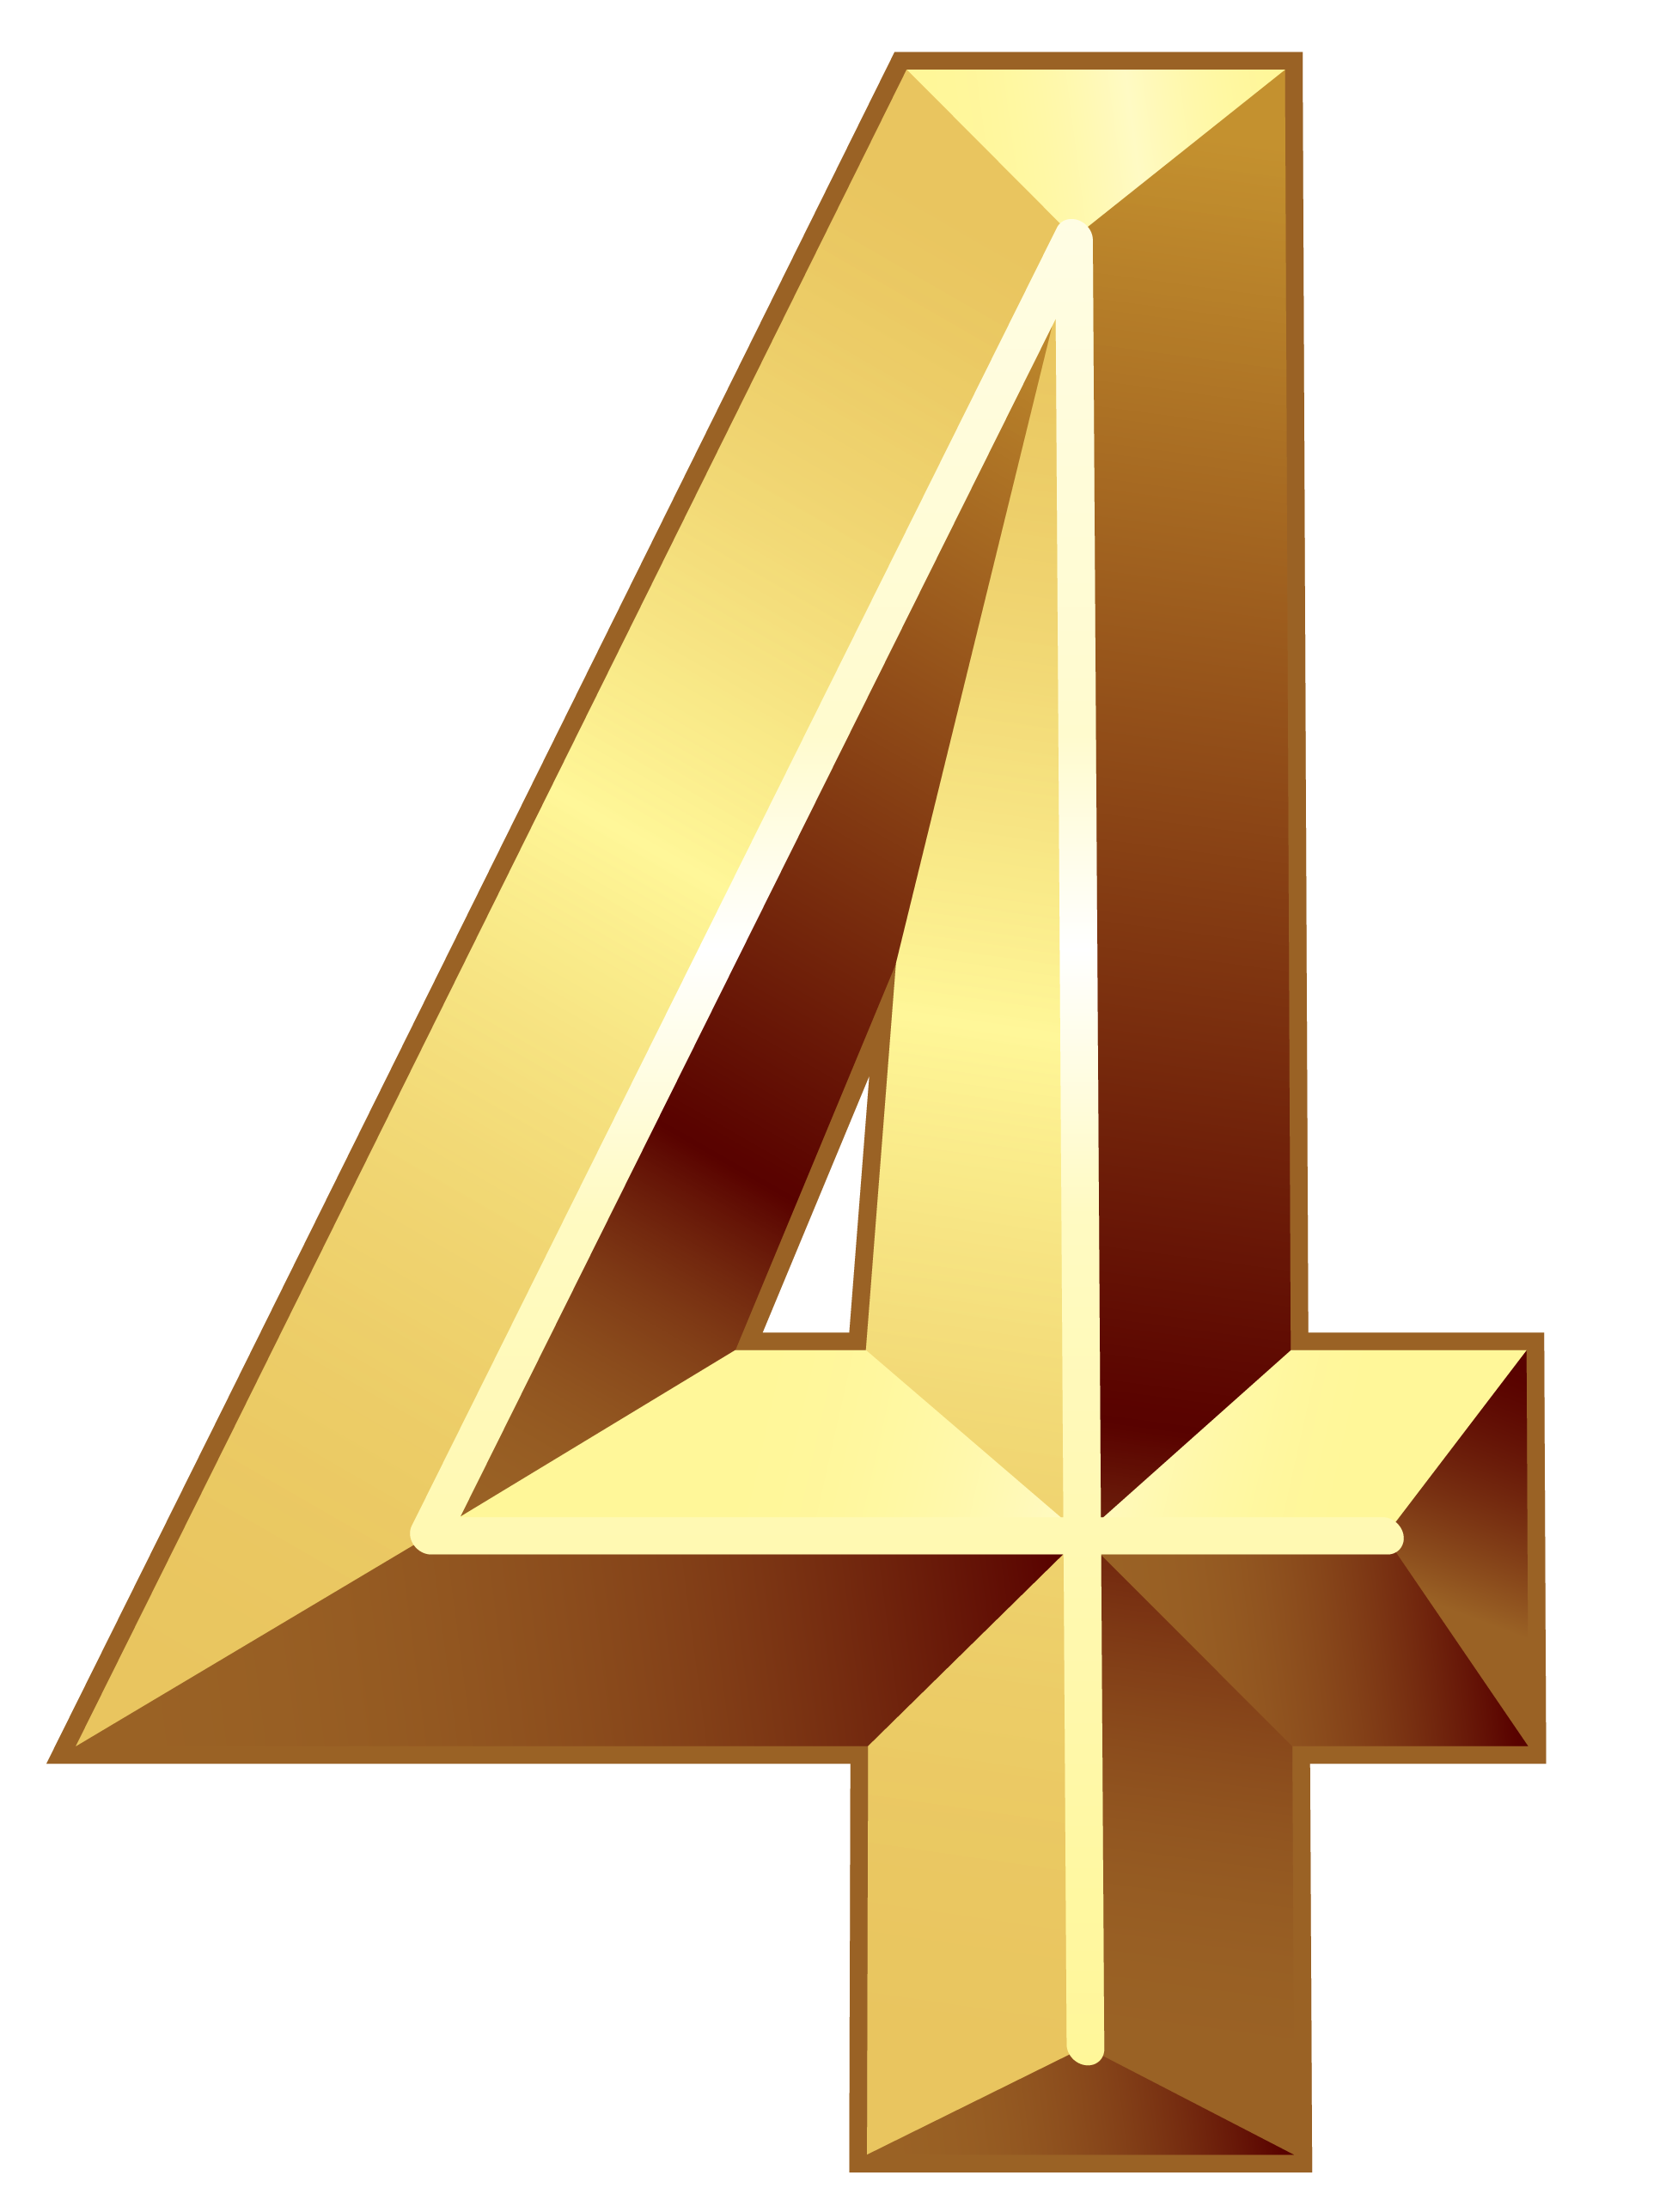 4 transparent four. Number free png images